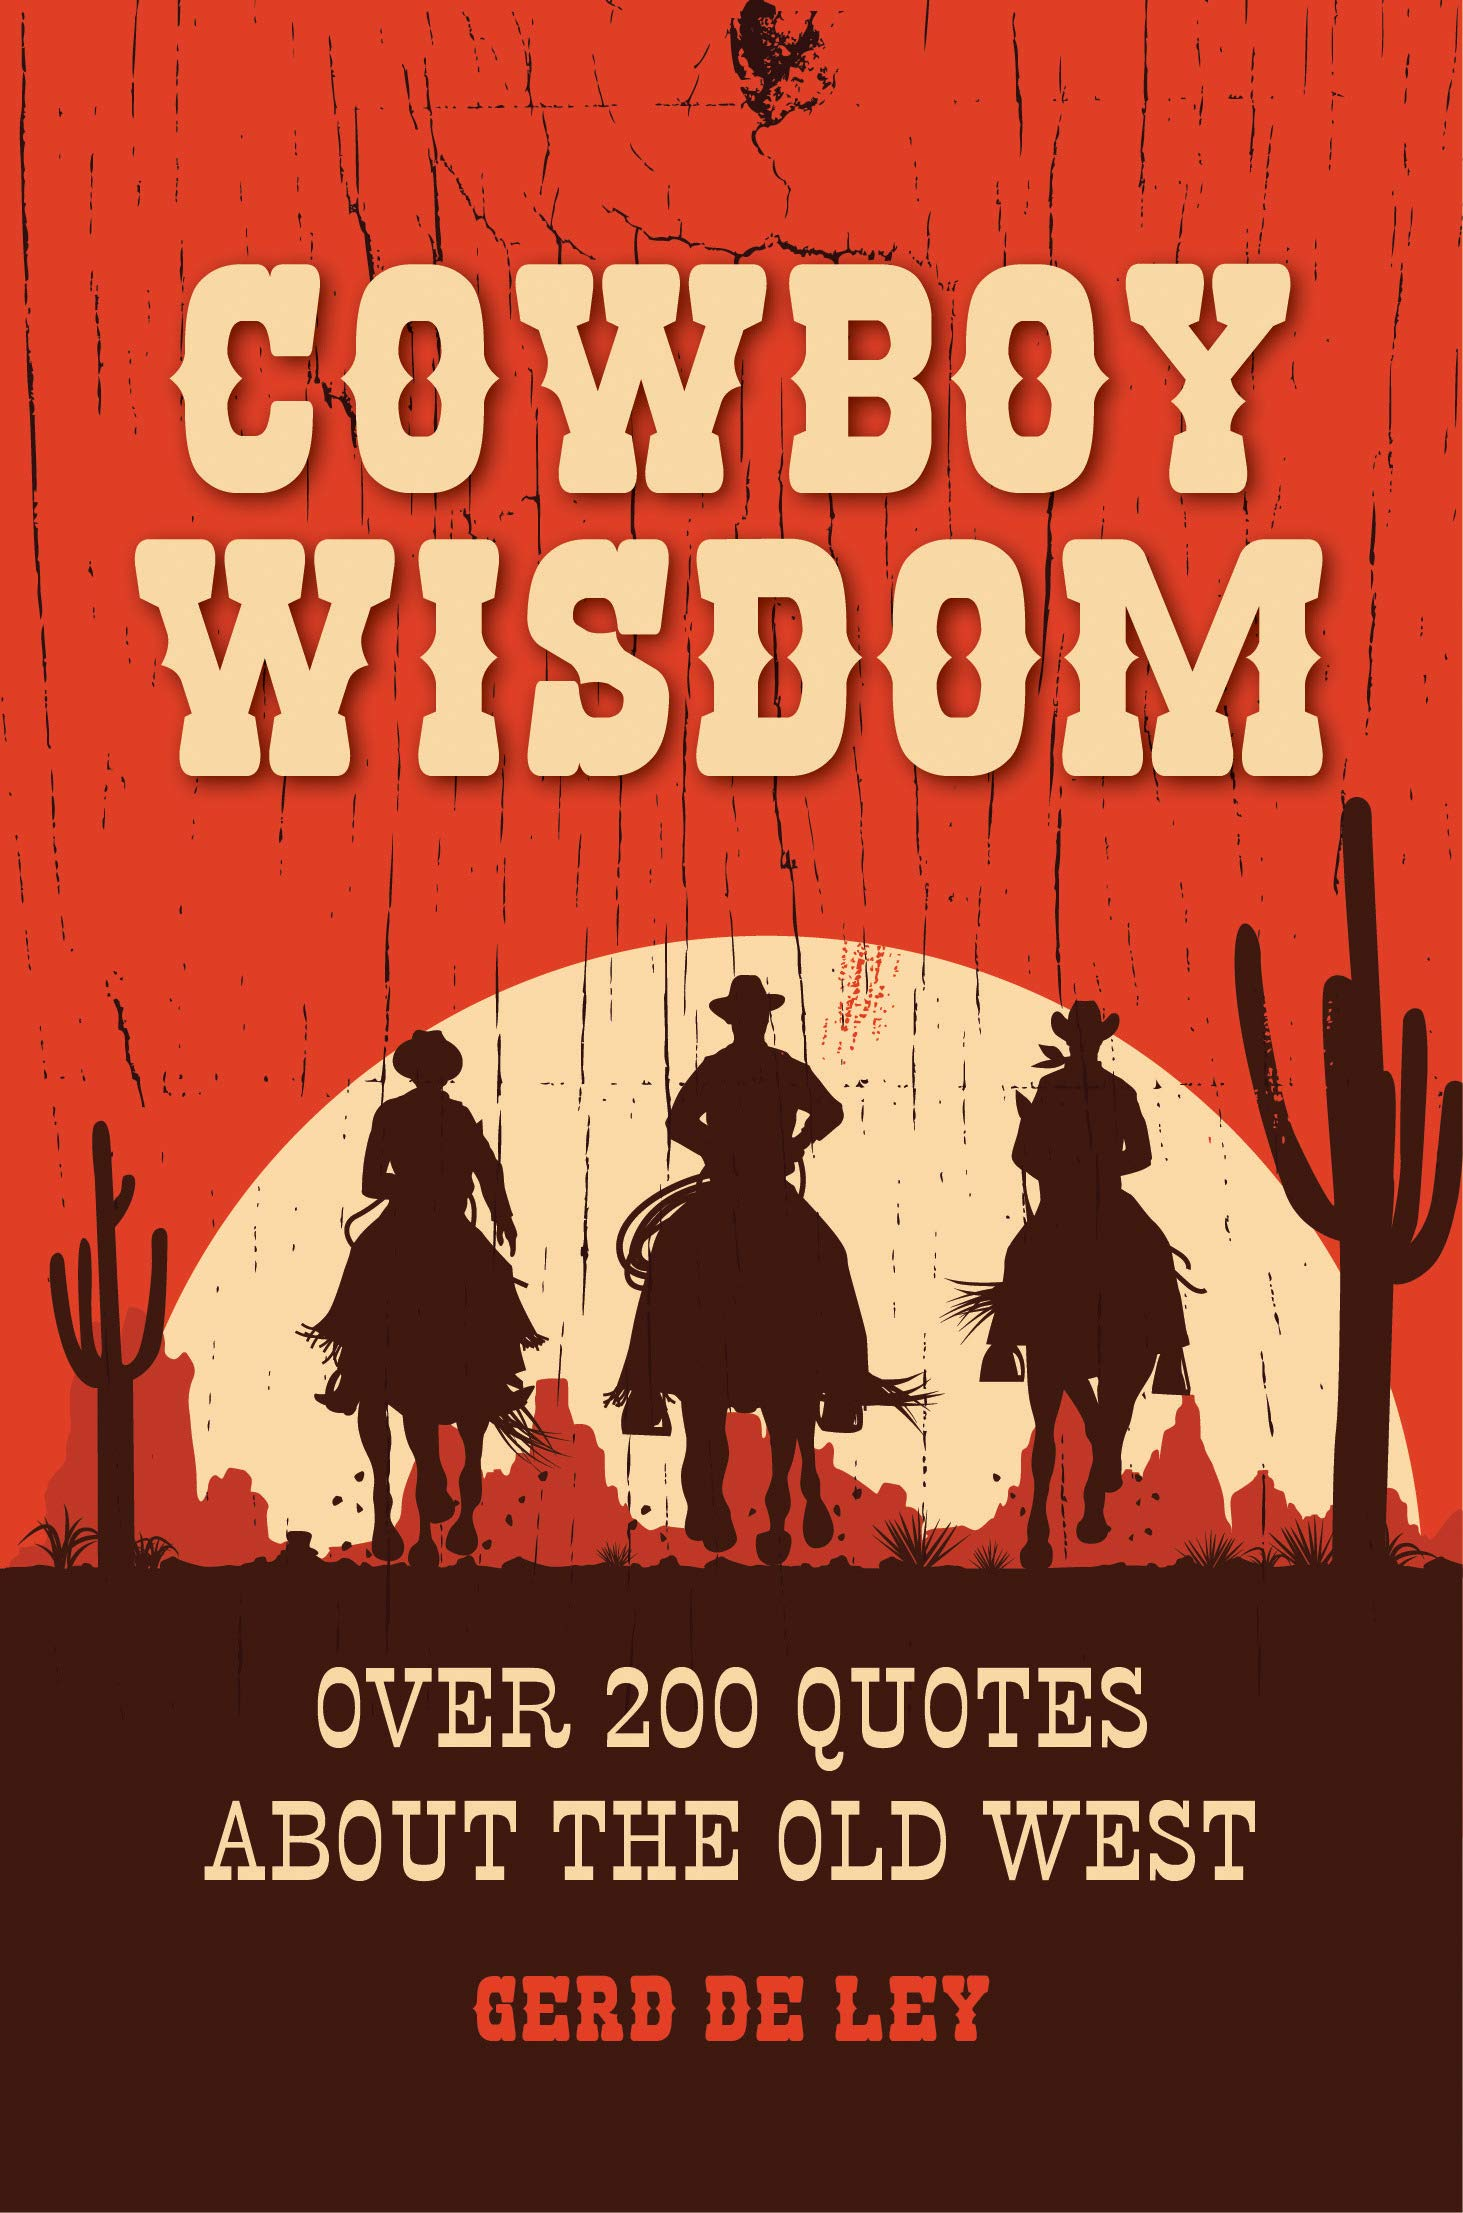 Cowboy Quotes | Cowboy Wisdom Over 200 Quotes About The Old West Gerd De Ley